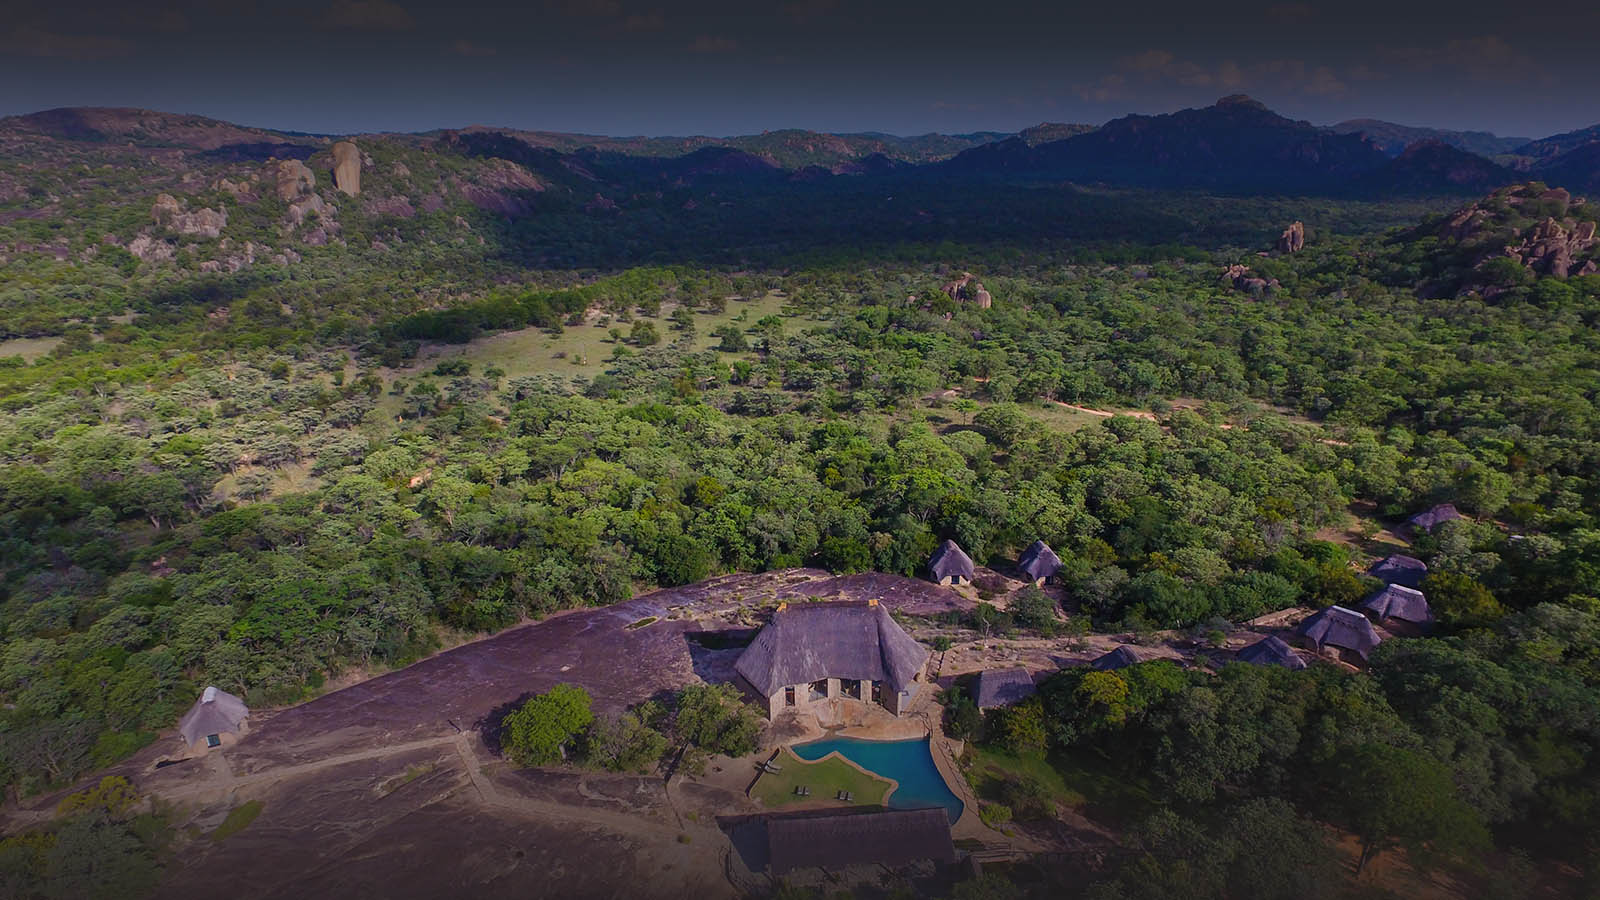 matobo hills lodge-zimbabwe-lodges-accommodation-matopos-matobo-national-park-hills